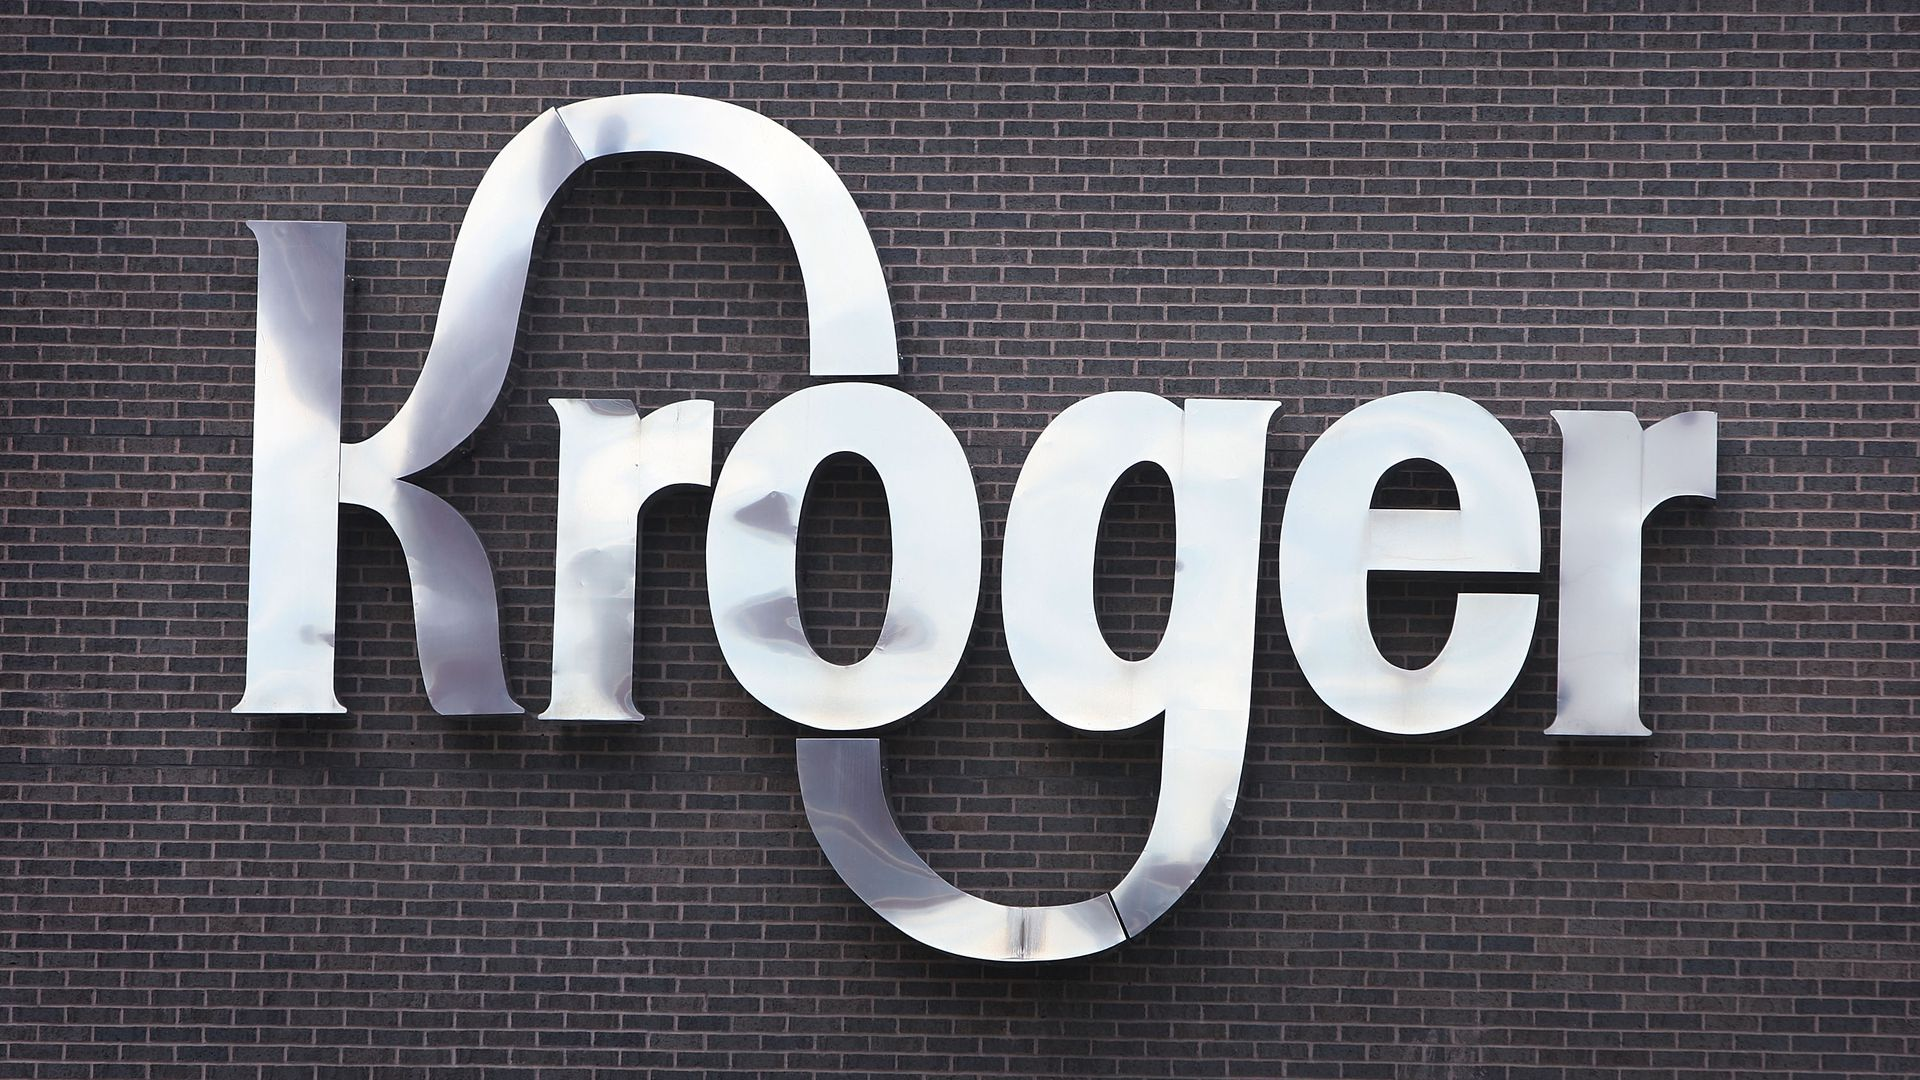 Kroger Co. corporate headquarters  in downtown Cincinnati, Ohio